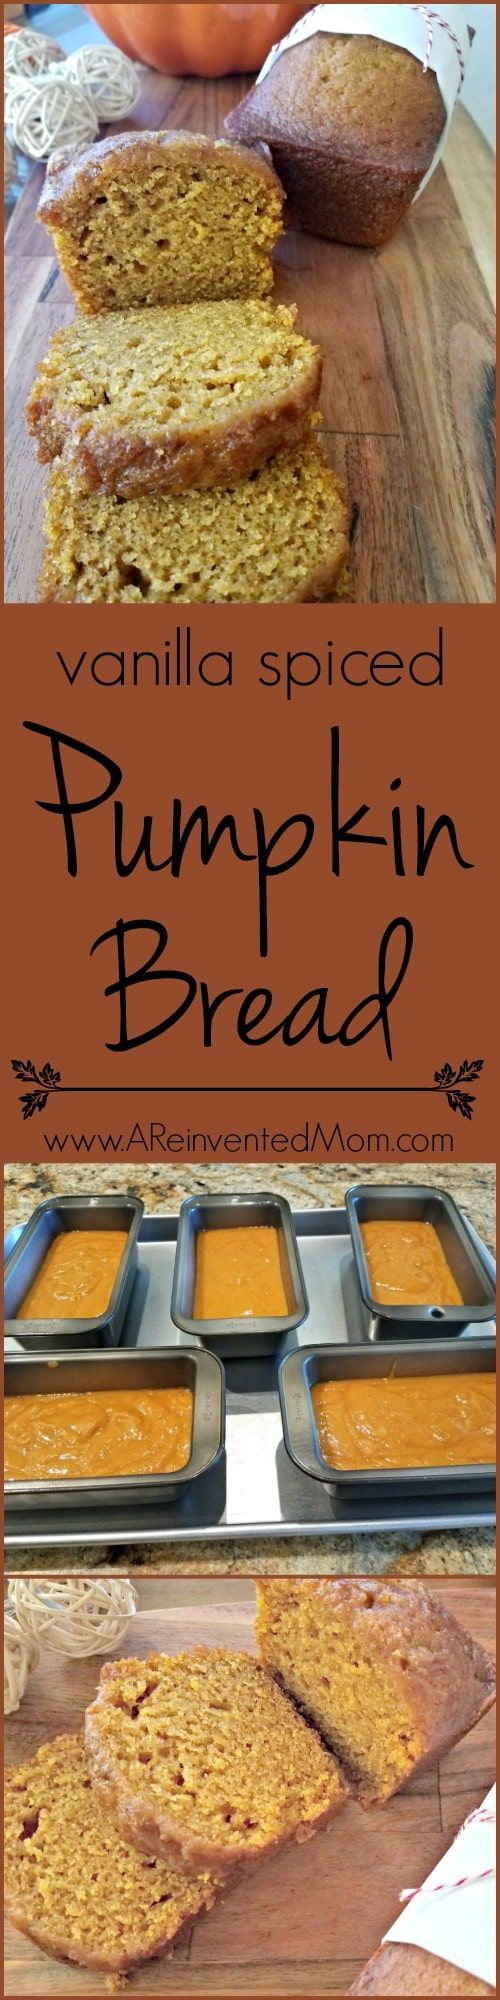 Looking to jazz up your Thanksgiving bread basket or dessert table? A batch of Vanilla Spiced Pumpkin Bread should do the trick | A Reinvented Mom via @areinventedmom